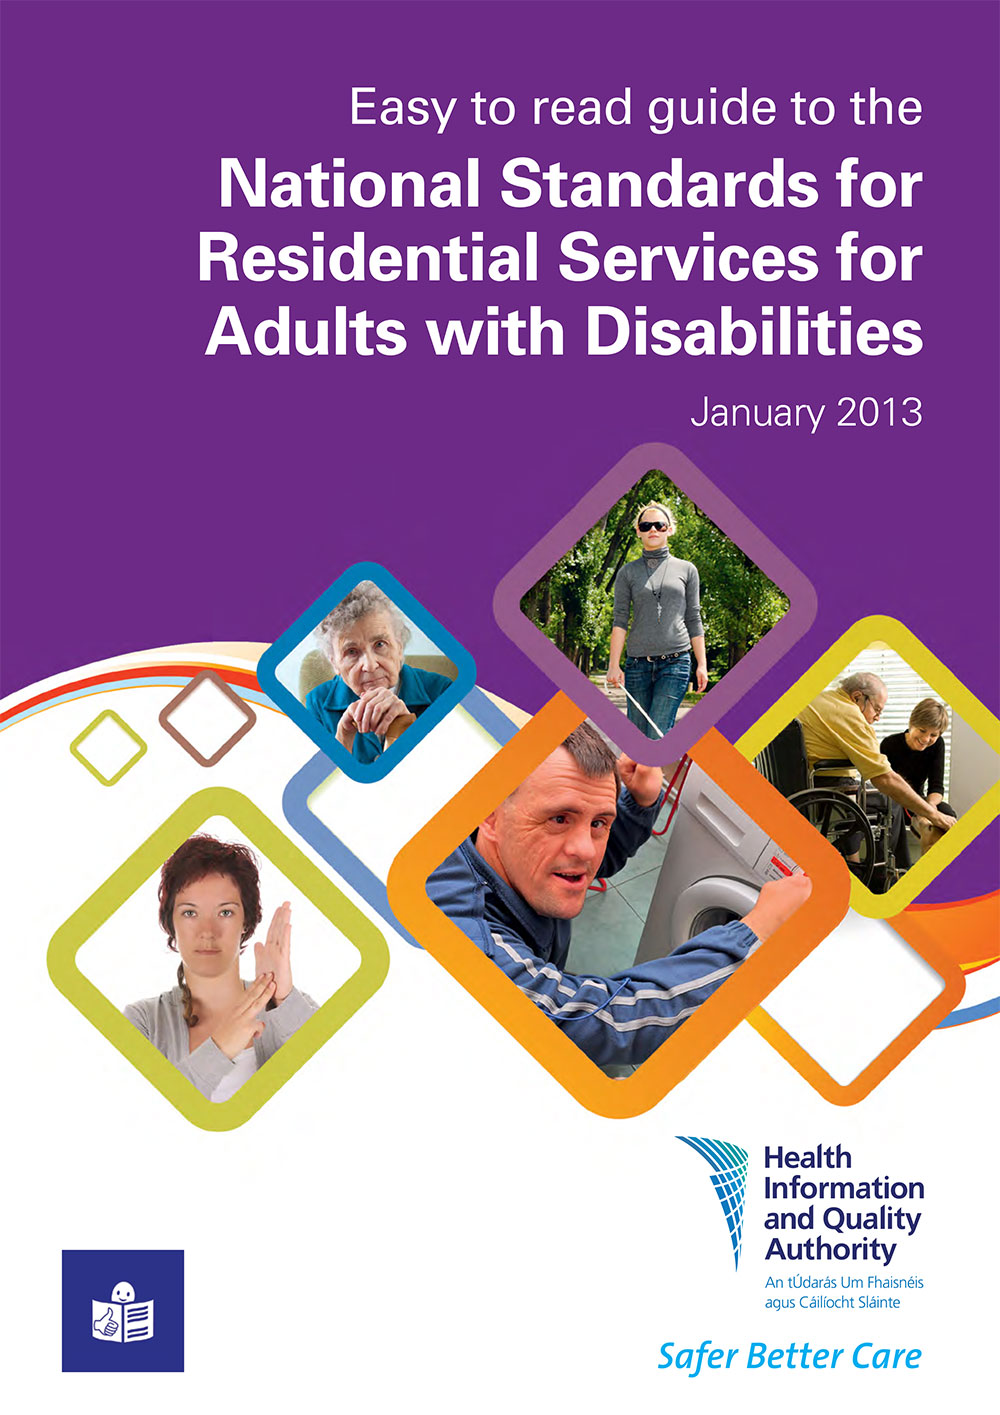 Easy to read guide to the National Standards for Residential Services for Adults with Disabilities  HIQA January 2013